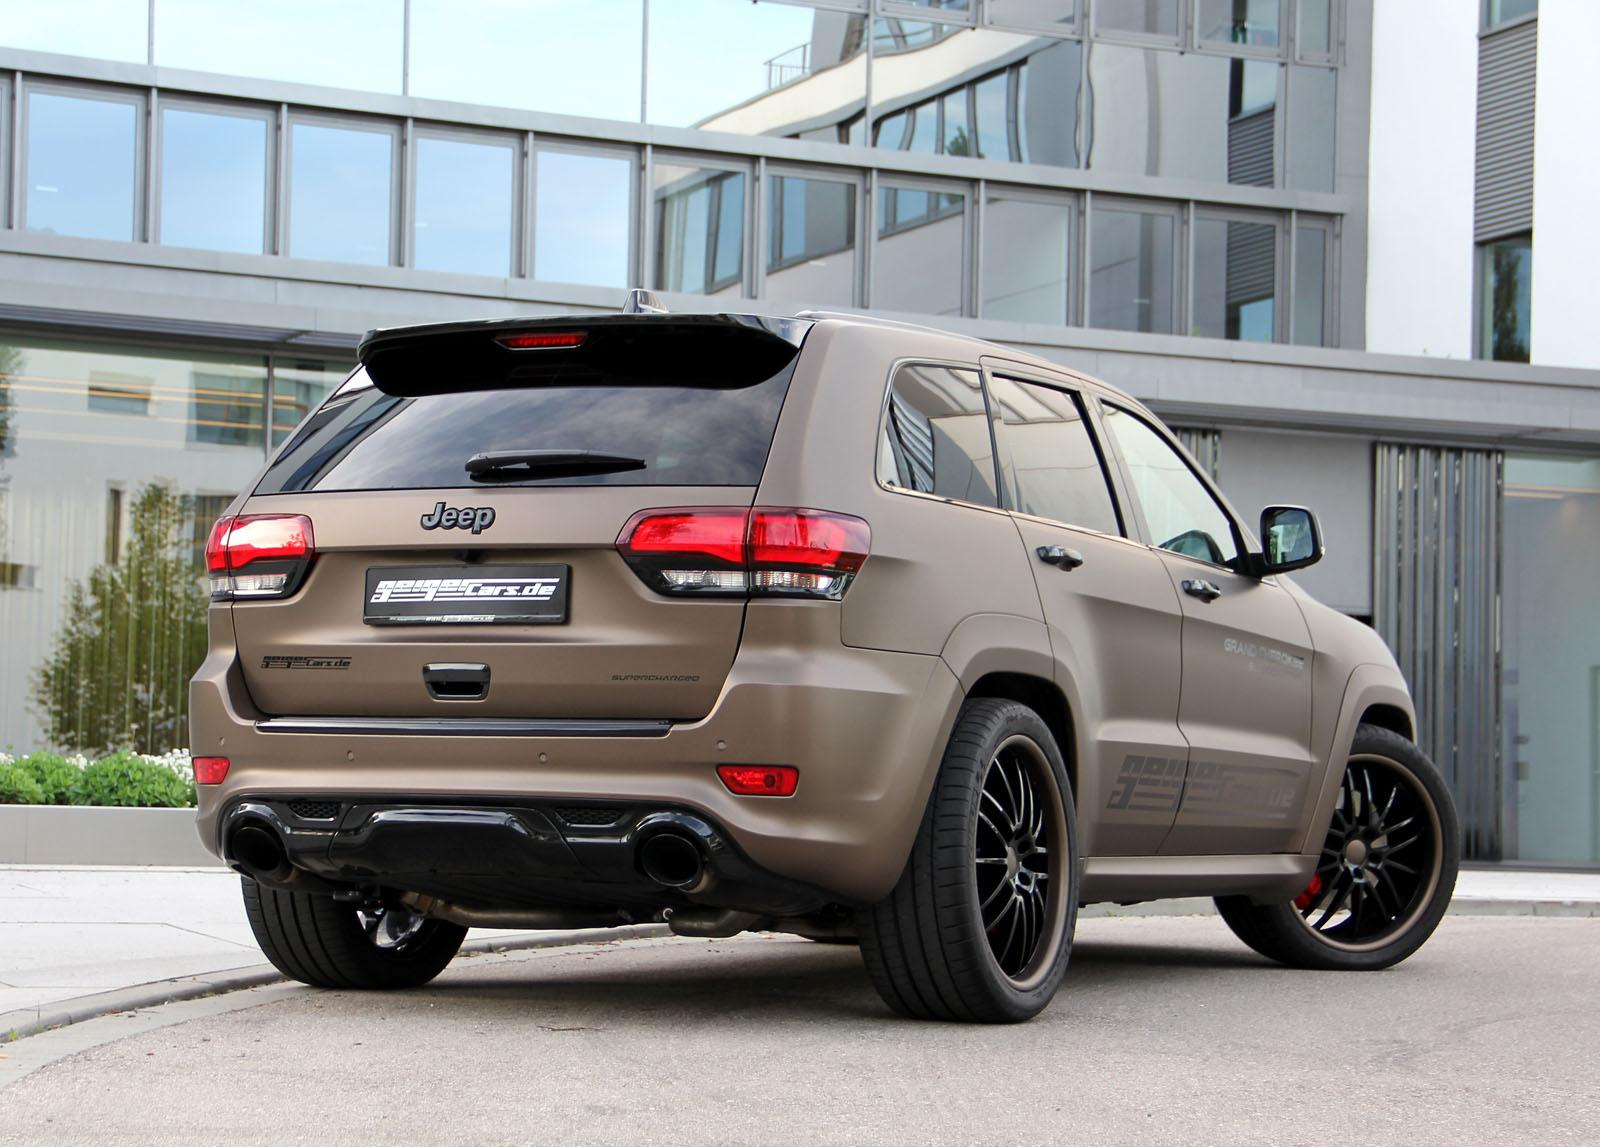 breathtaking, 708 hp in a jeep grand cherokee srt8